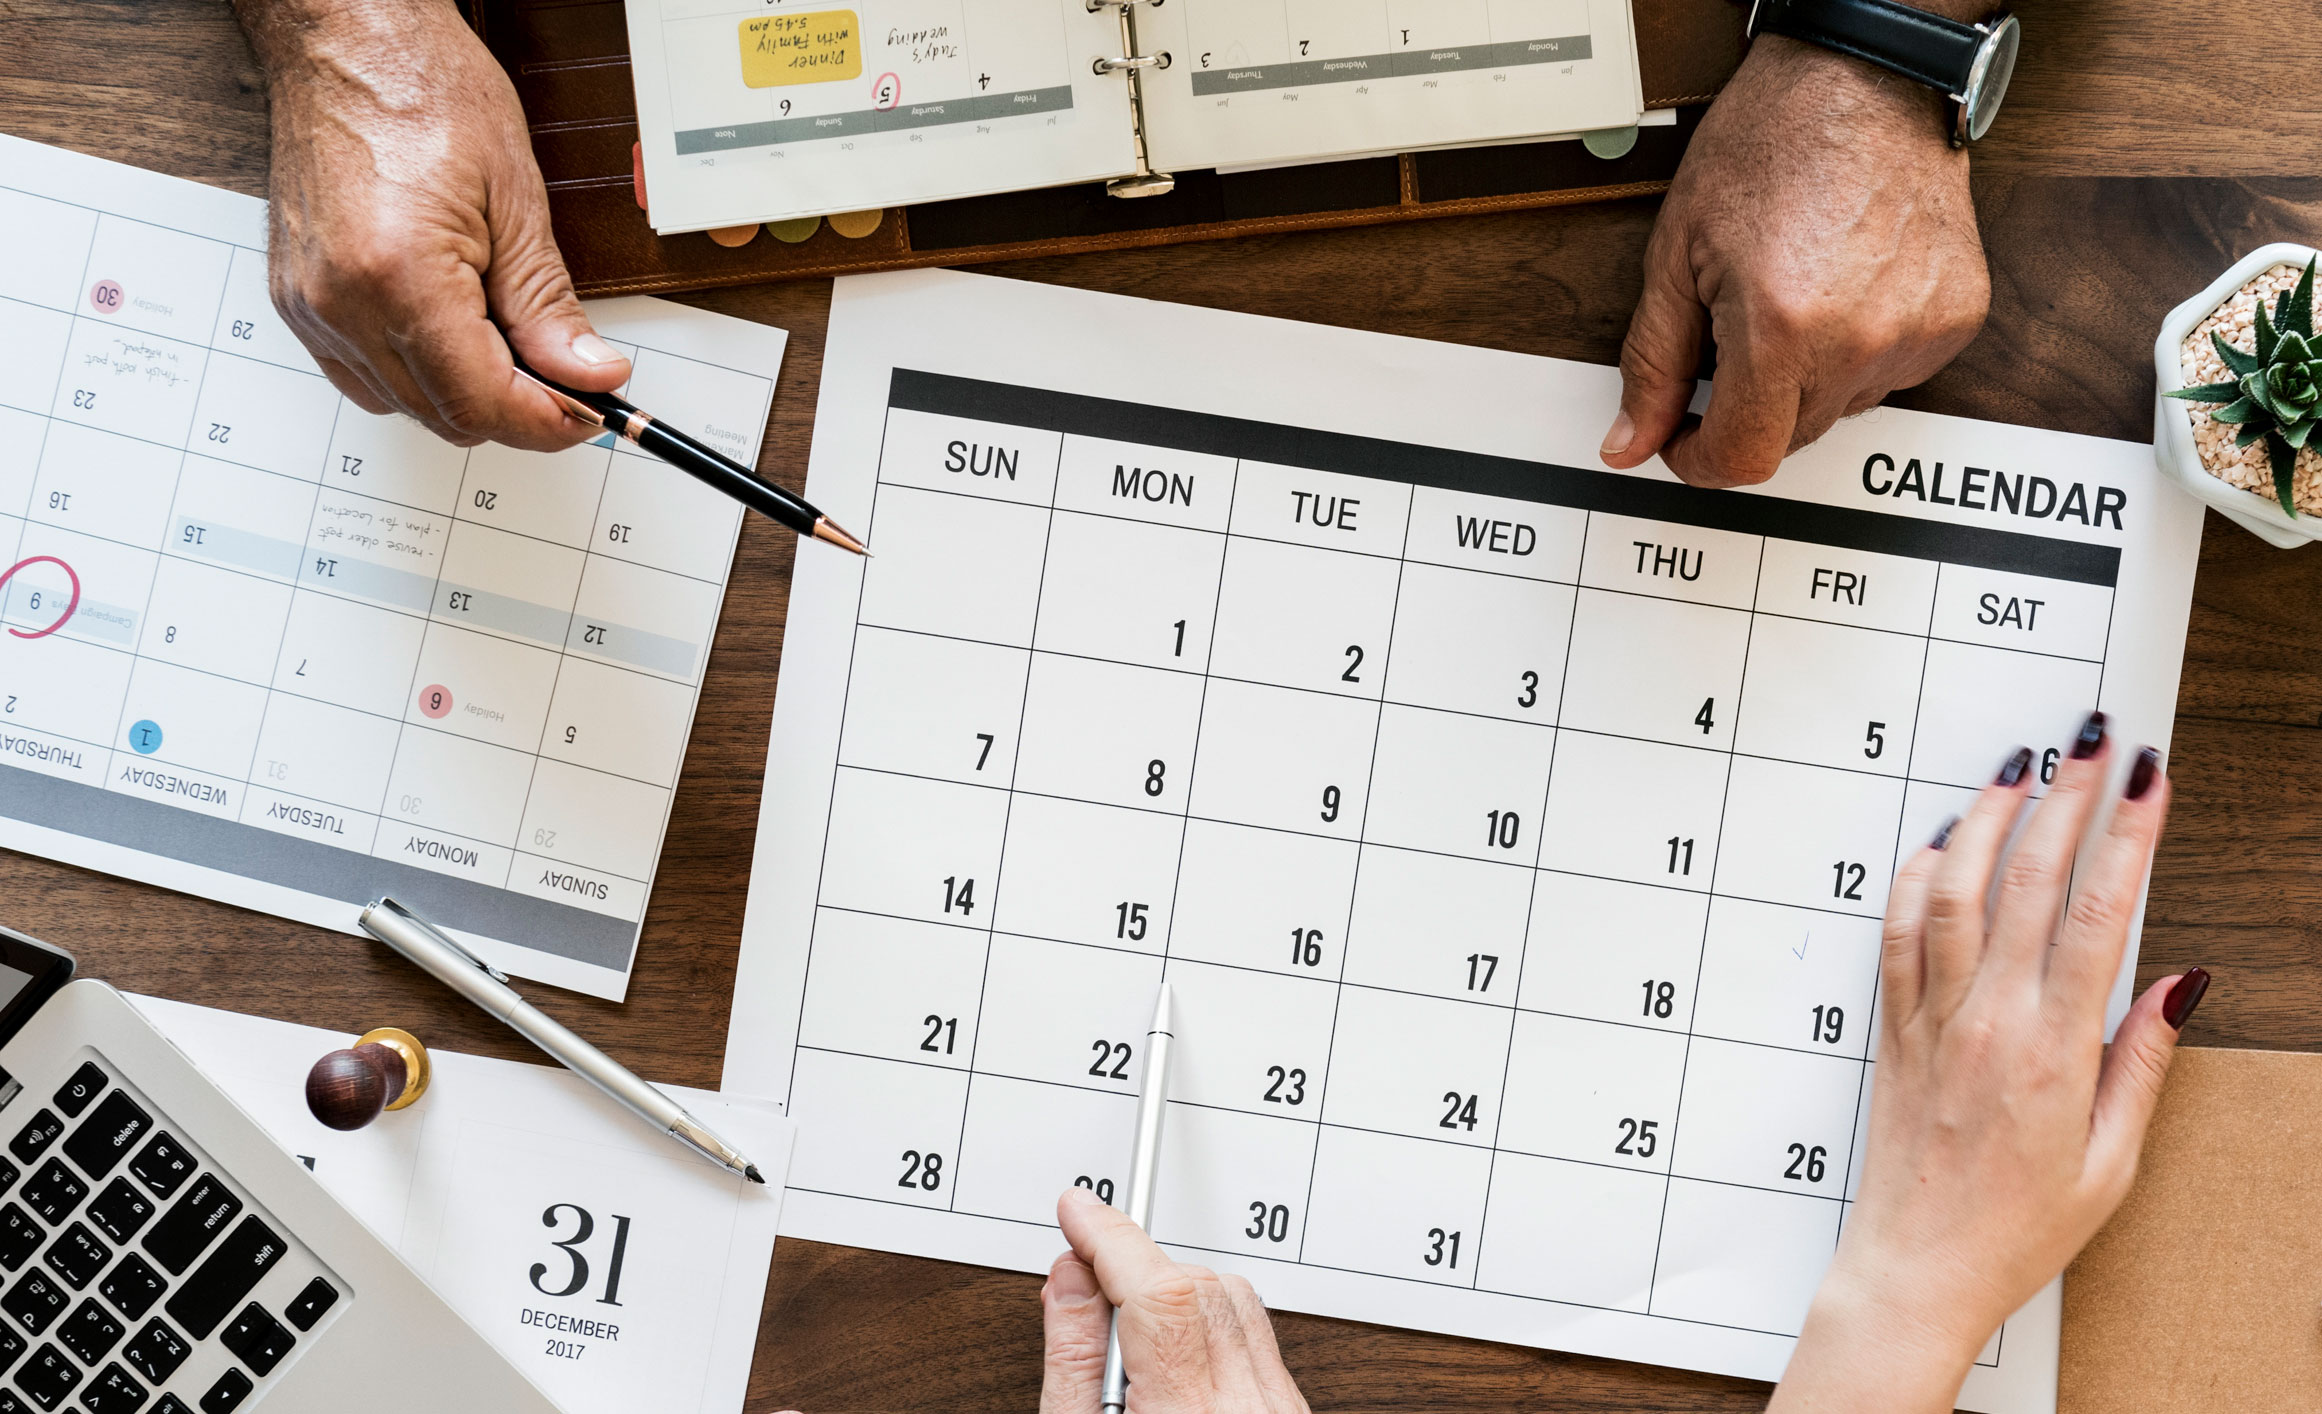 Image of hands and calendars